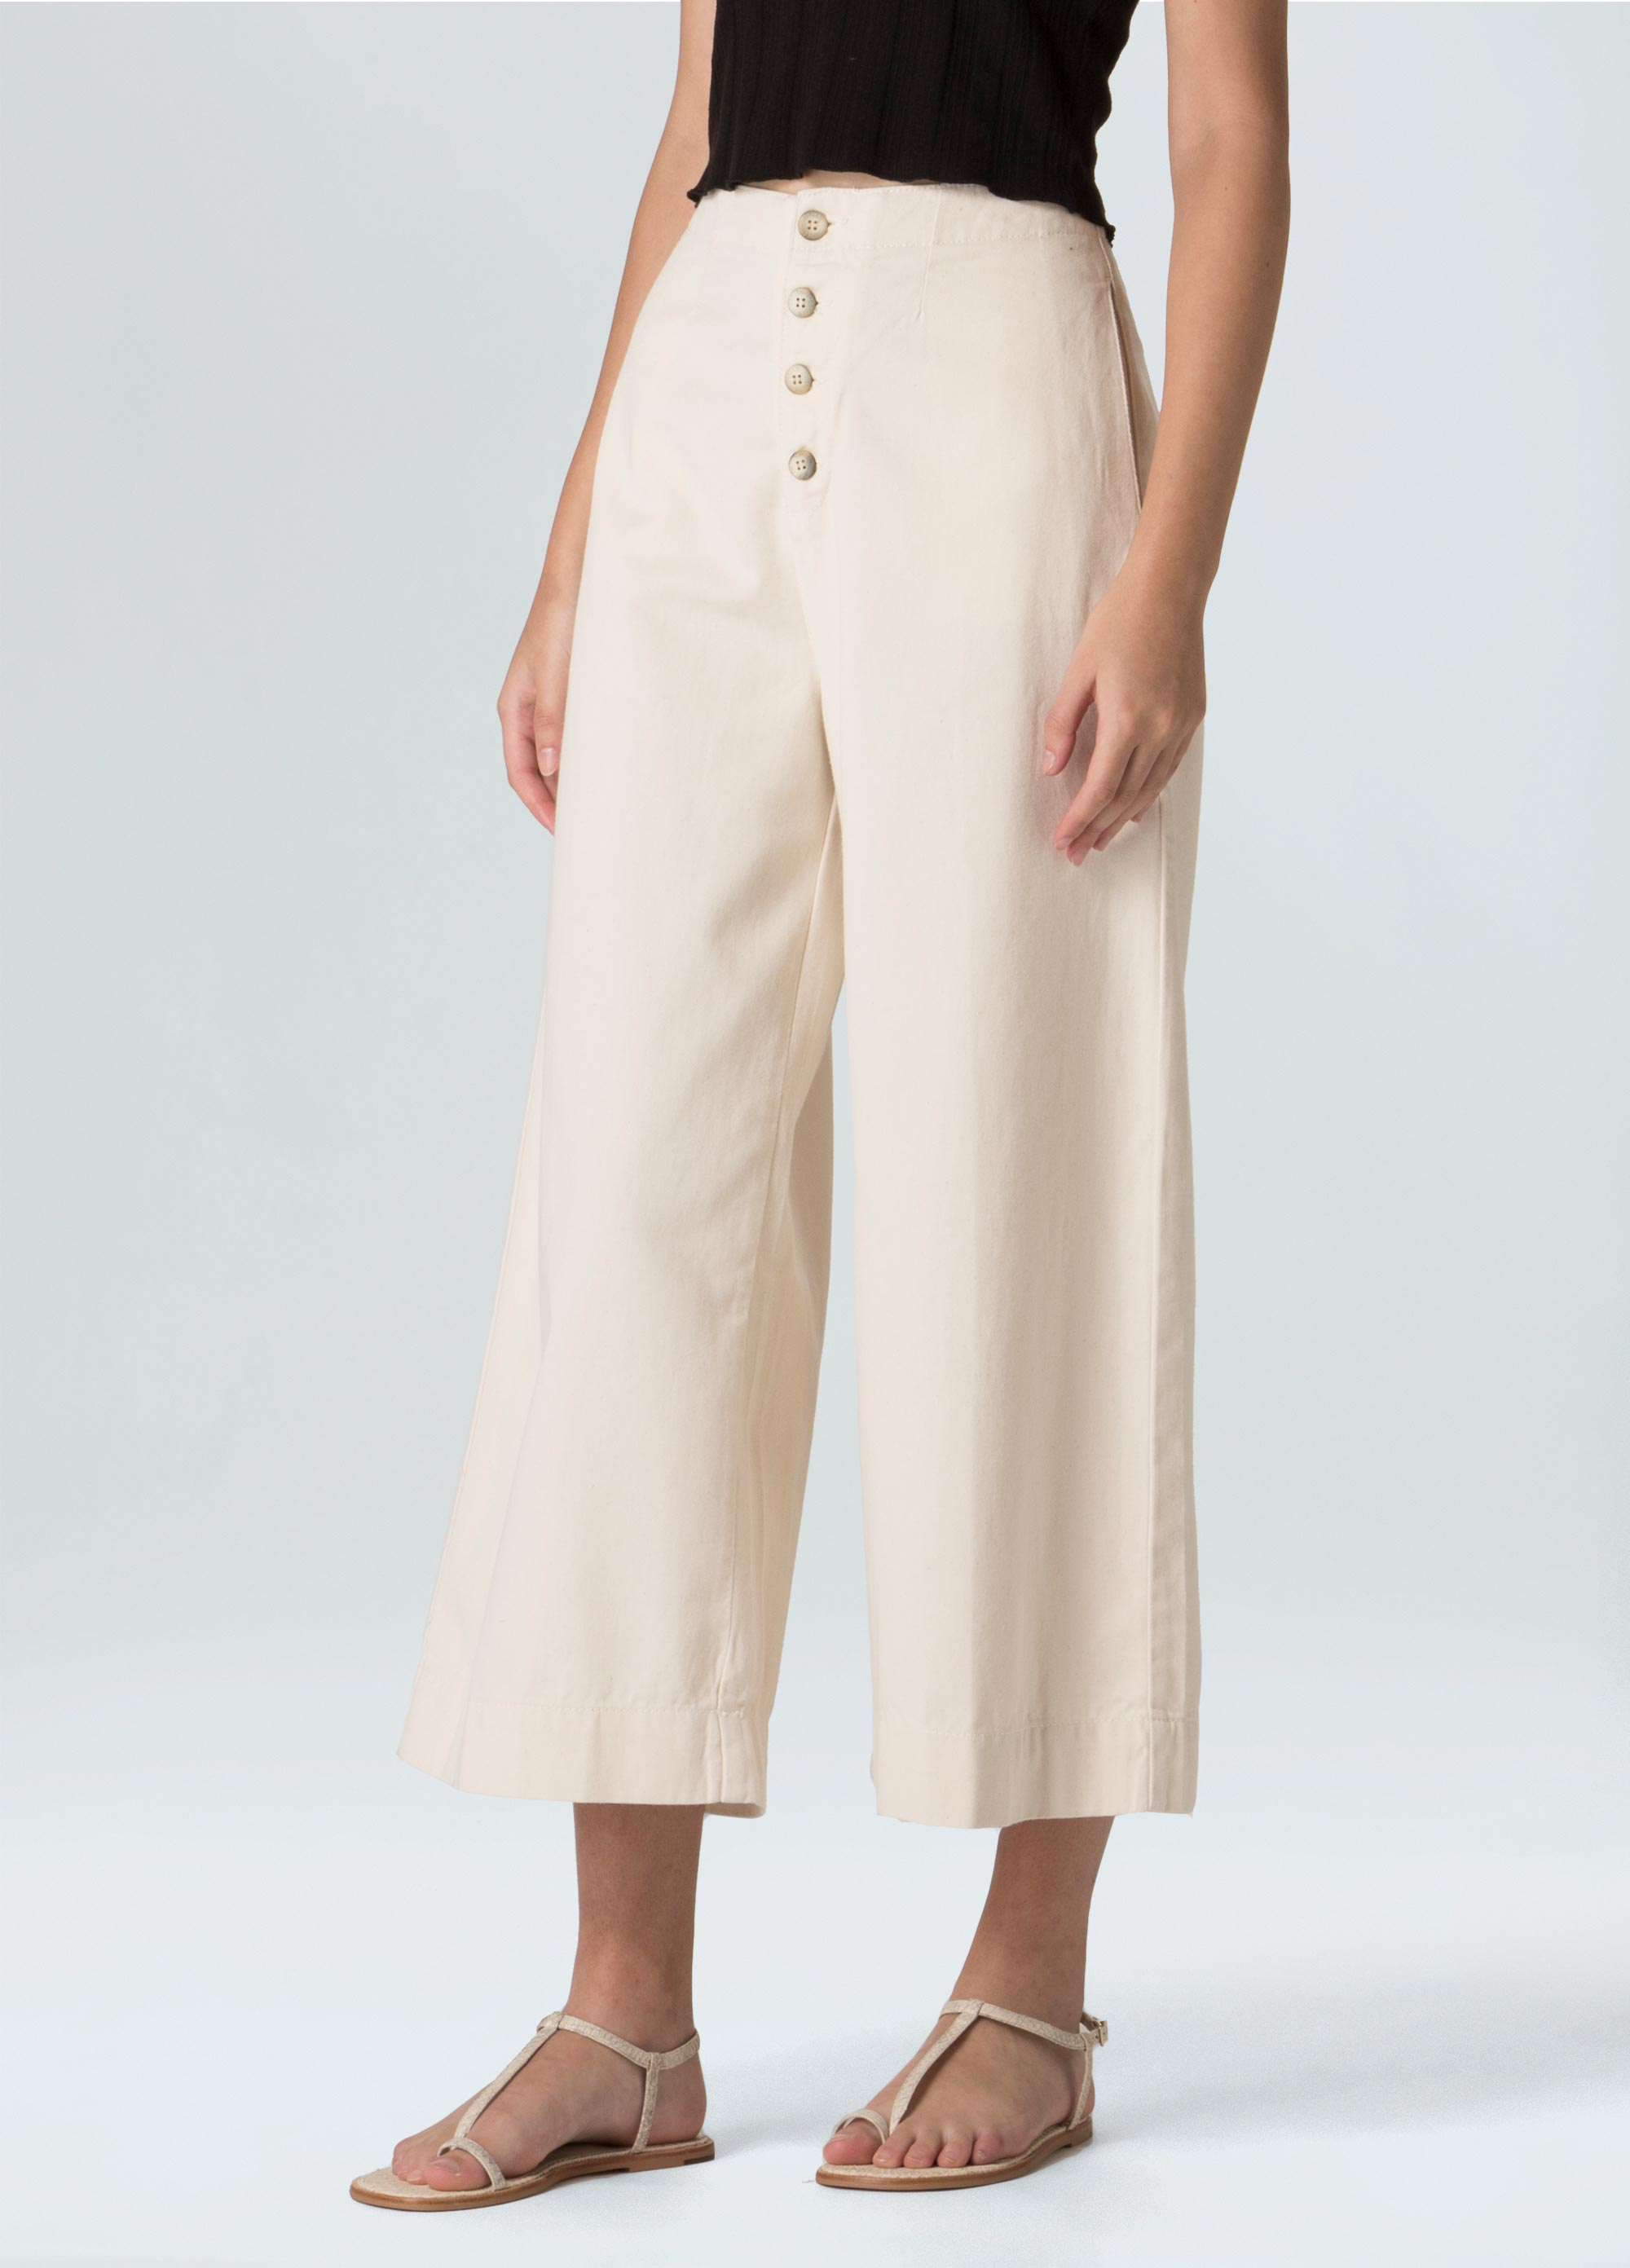 Women's Wide Leg Pants